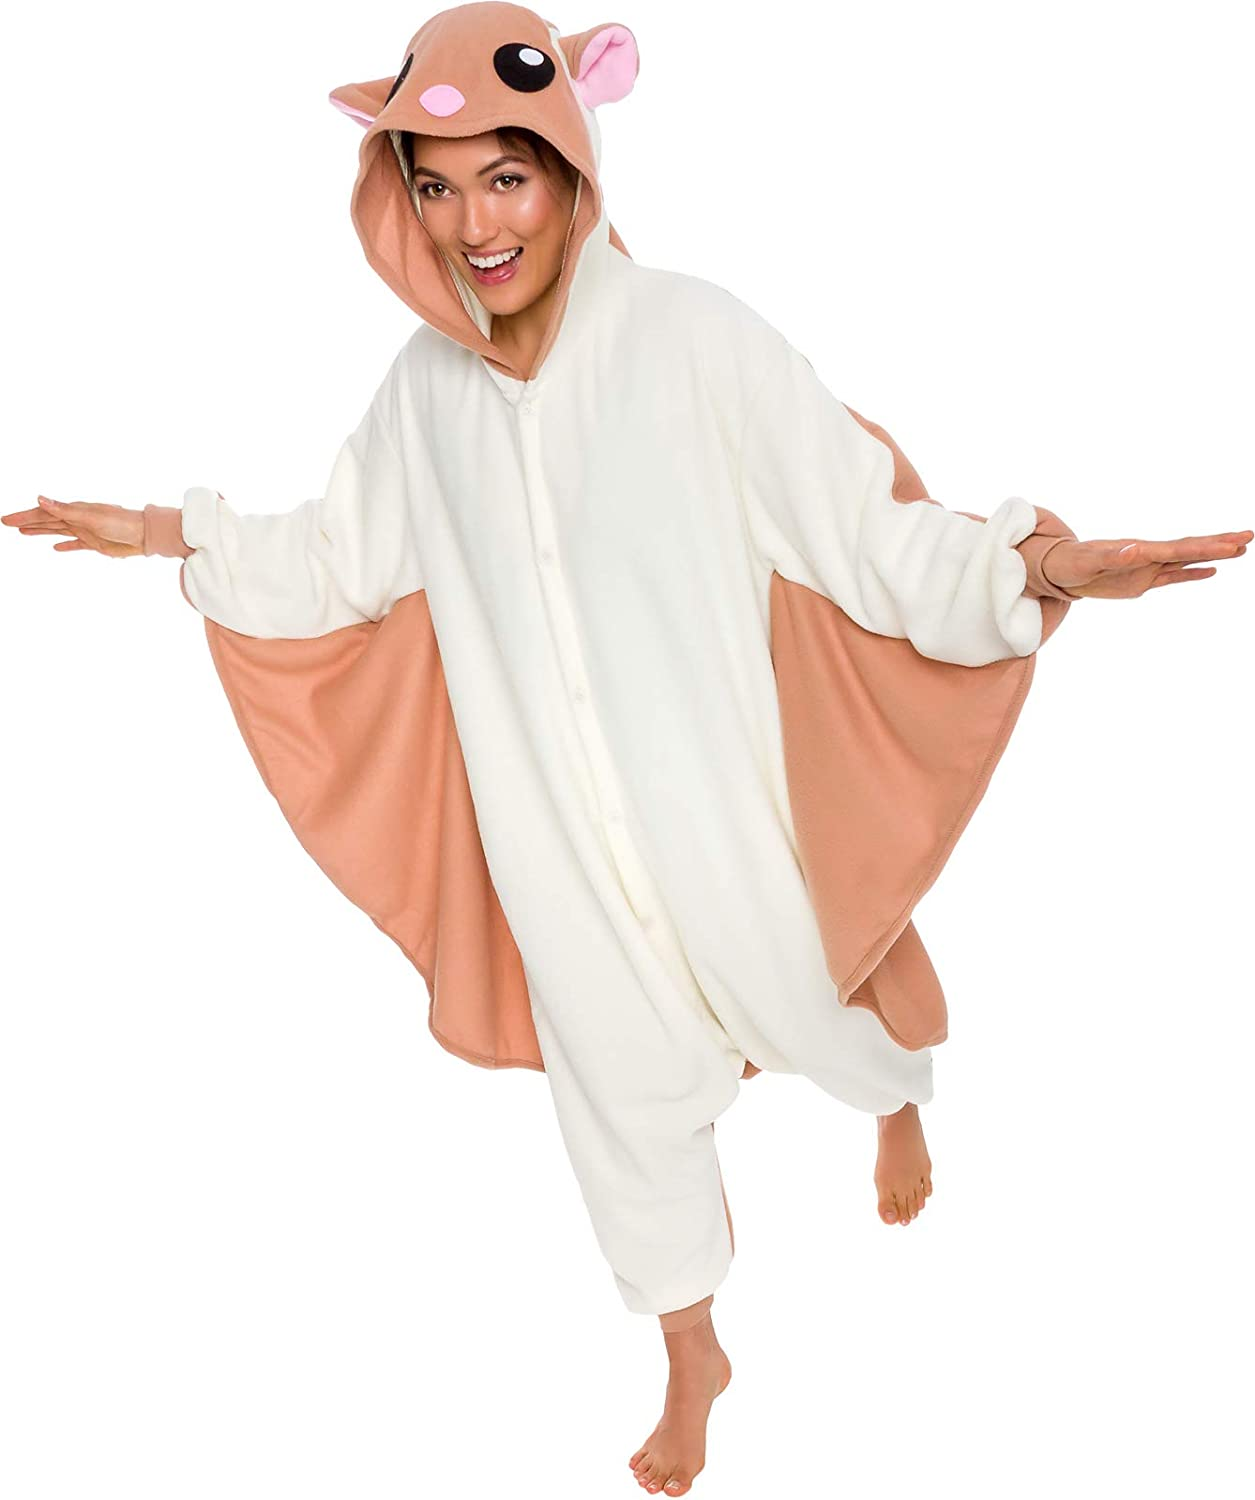 Silver Lilly Unisex Adult Pajamas Plush One Piece Cosplay Flying Squirrel Animal Costume M Amazon Ca Clothing Accessories